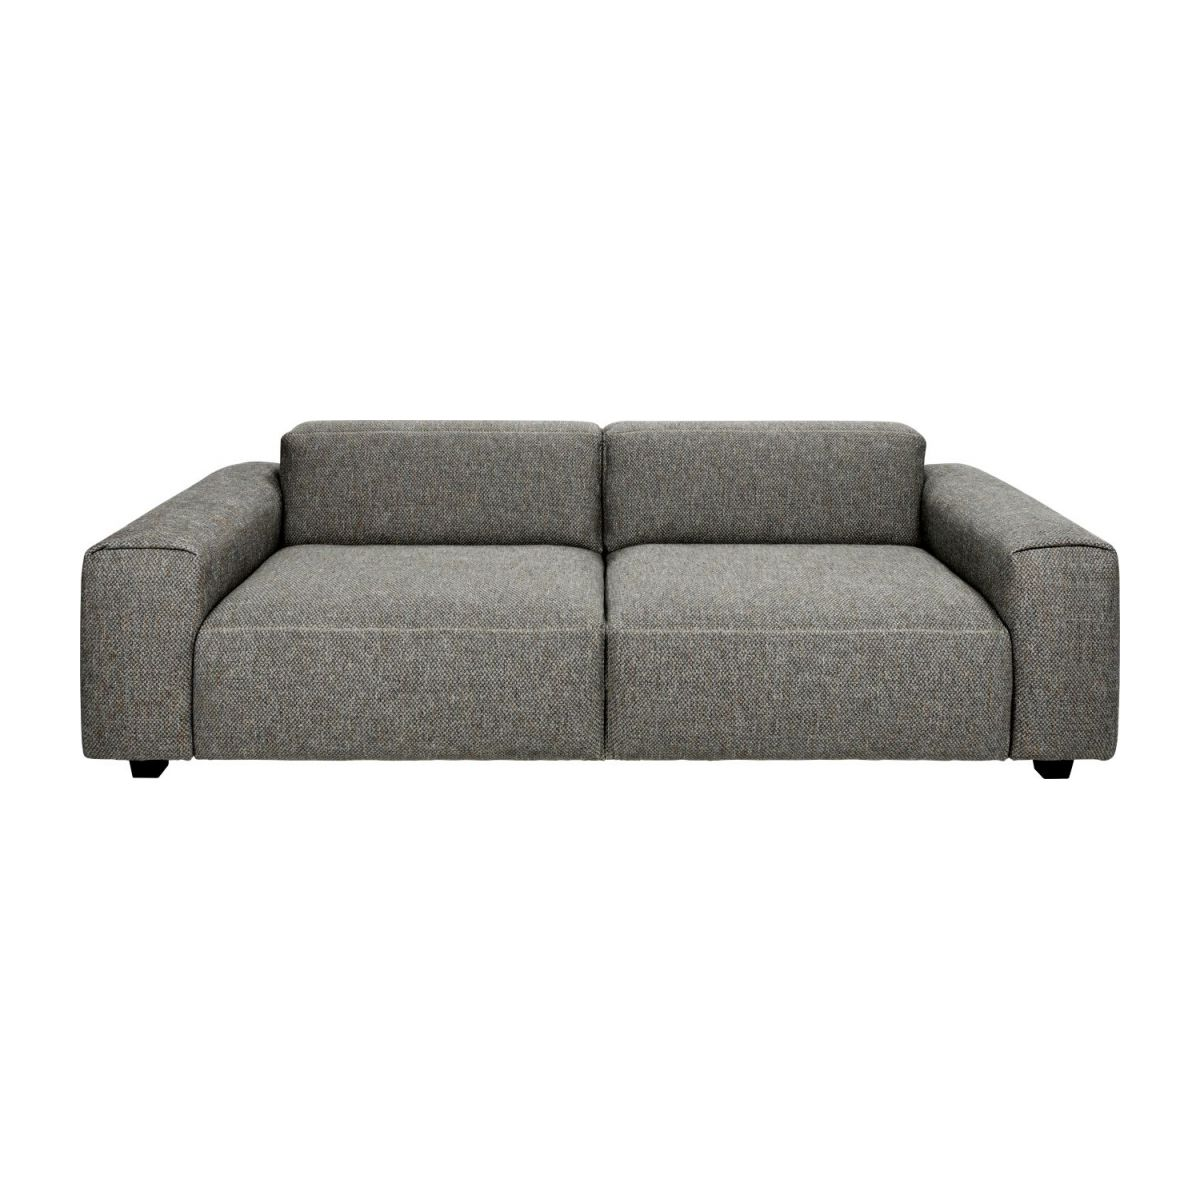 4-Sitzer Sofa aus Stoff Bellagio night black n°3